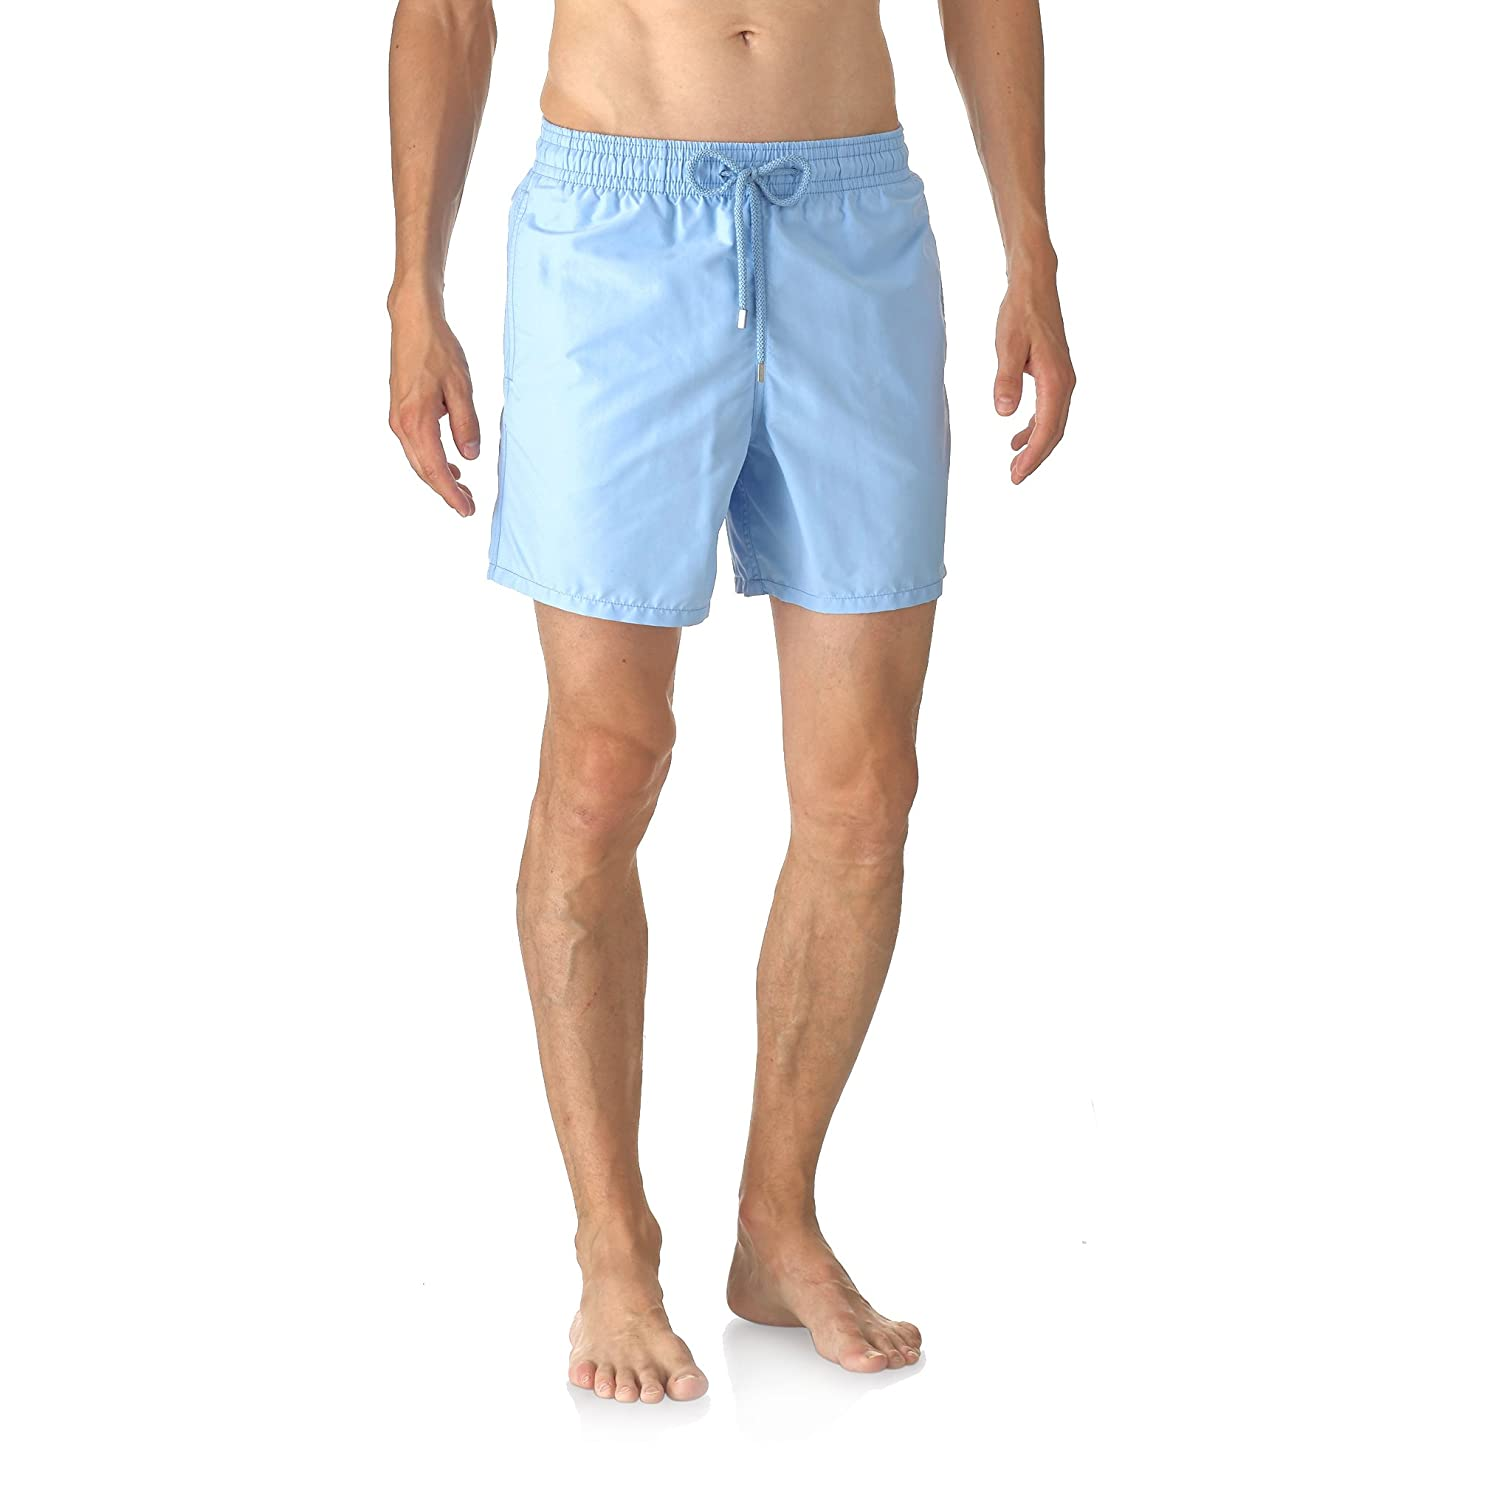 VILEBREQUIN - Swimming Trunks - Men - Plain Sky-Blue Moorea Swim Shorts for men